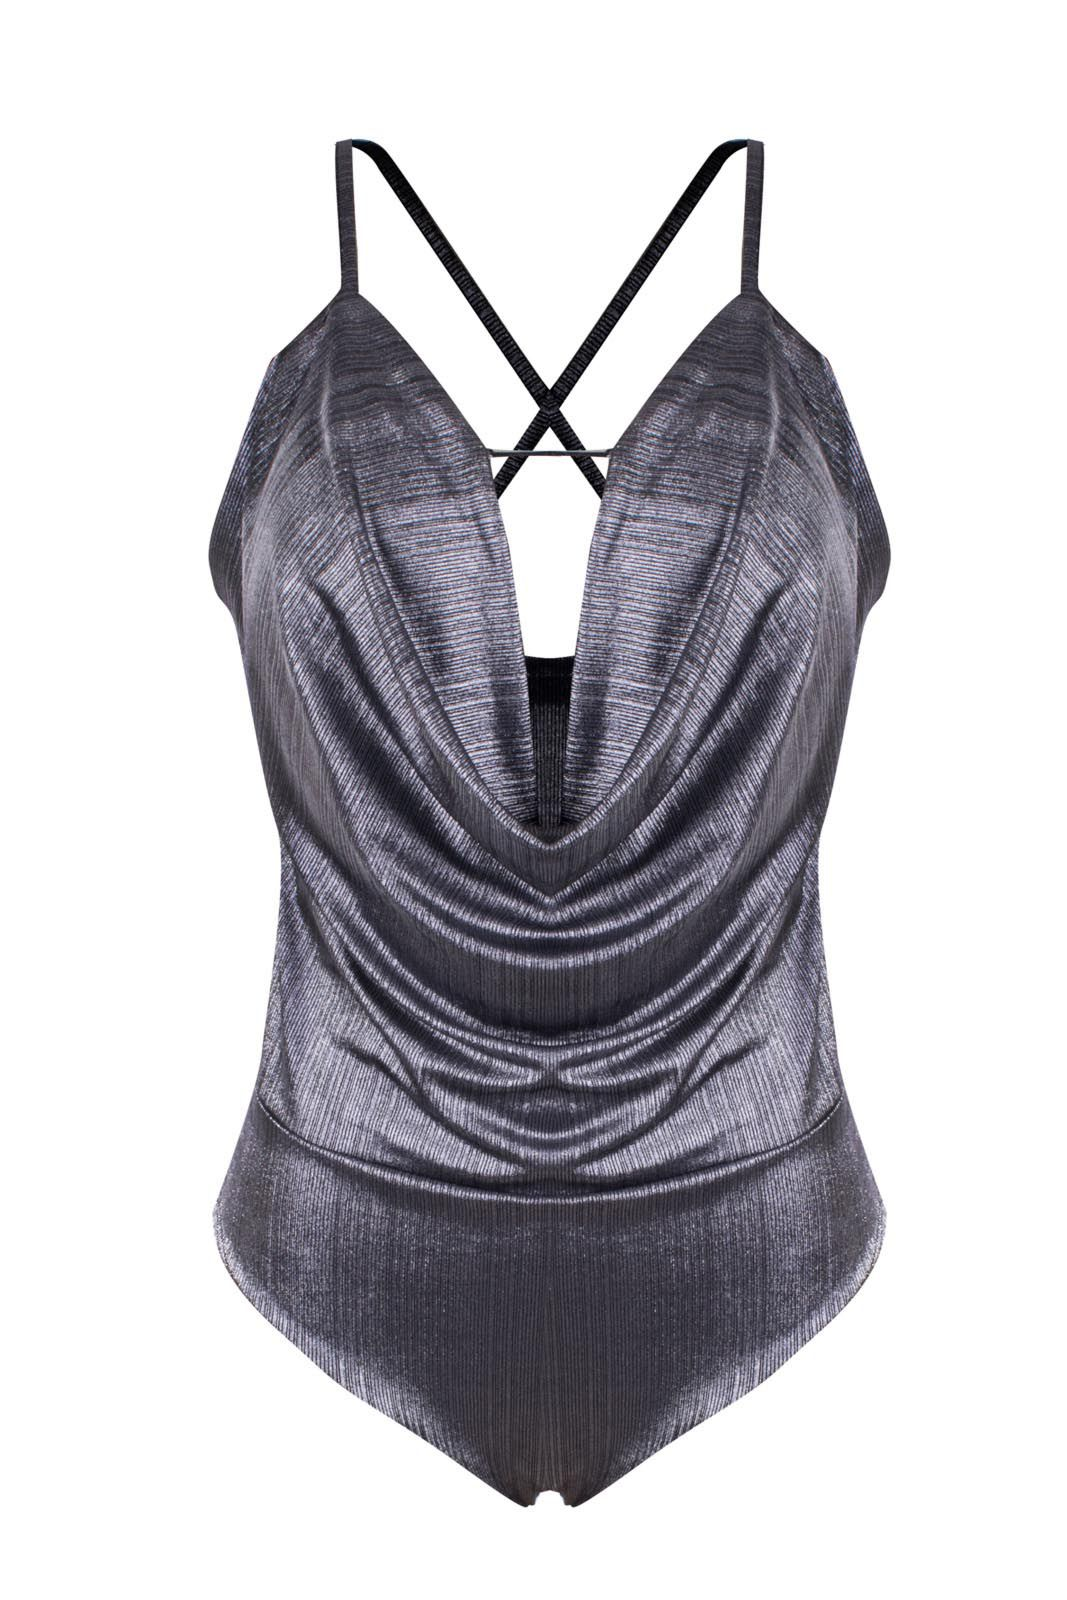 Body OutletDri Lurex Bojo Gargantilha Chocker Metalizado Cinza